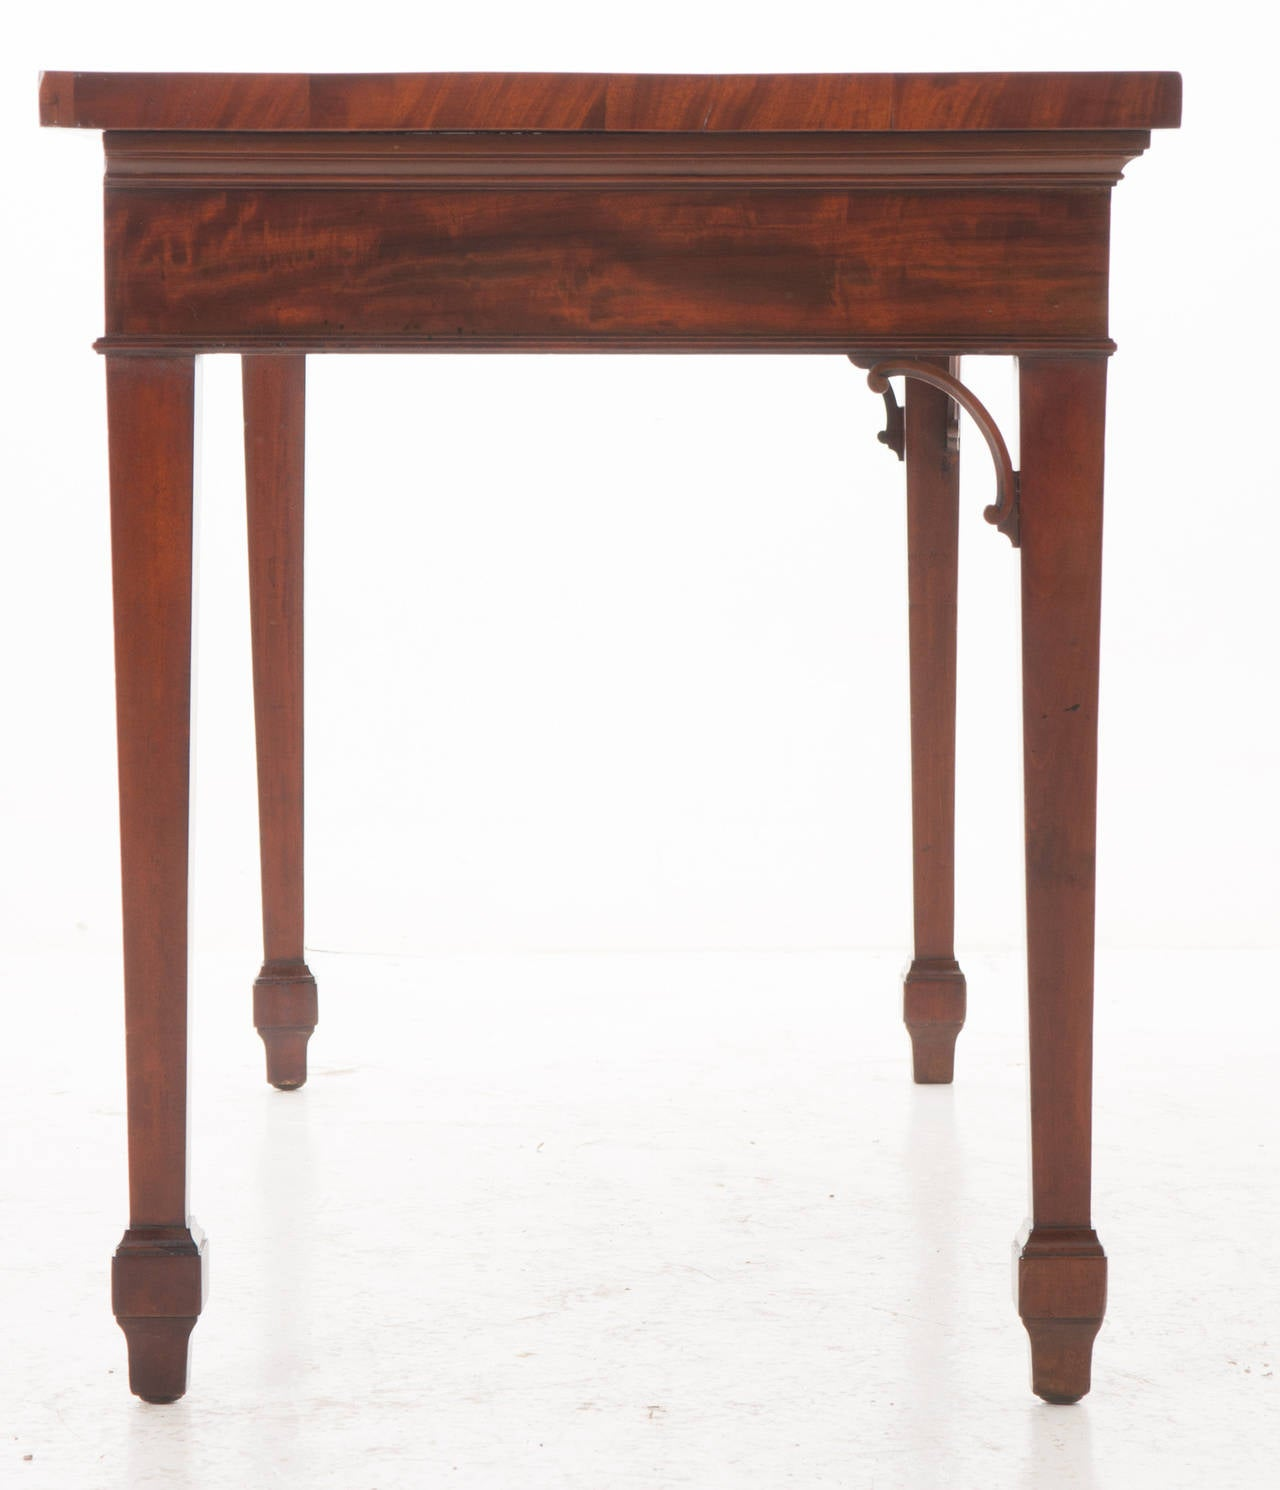 English 19th Century Mahogany Serpentine Server or Console For Sale 5